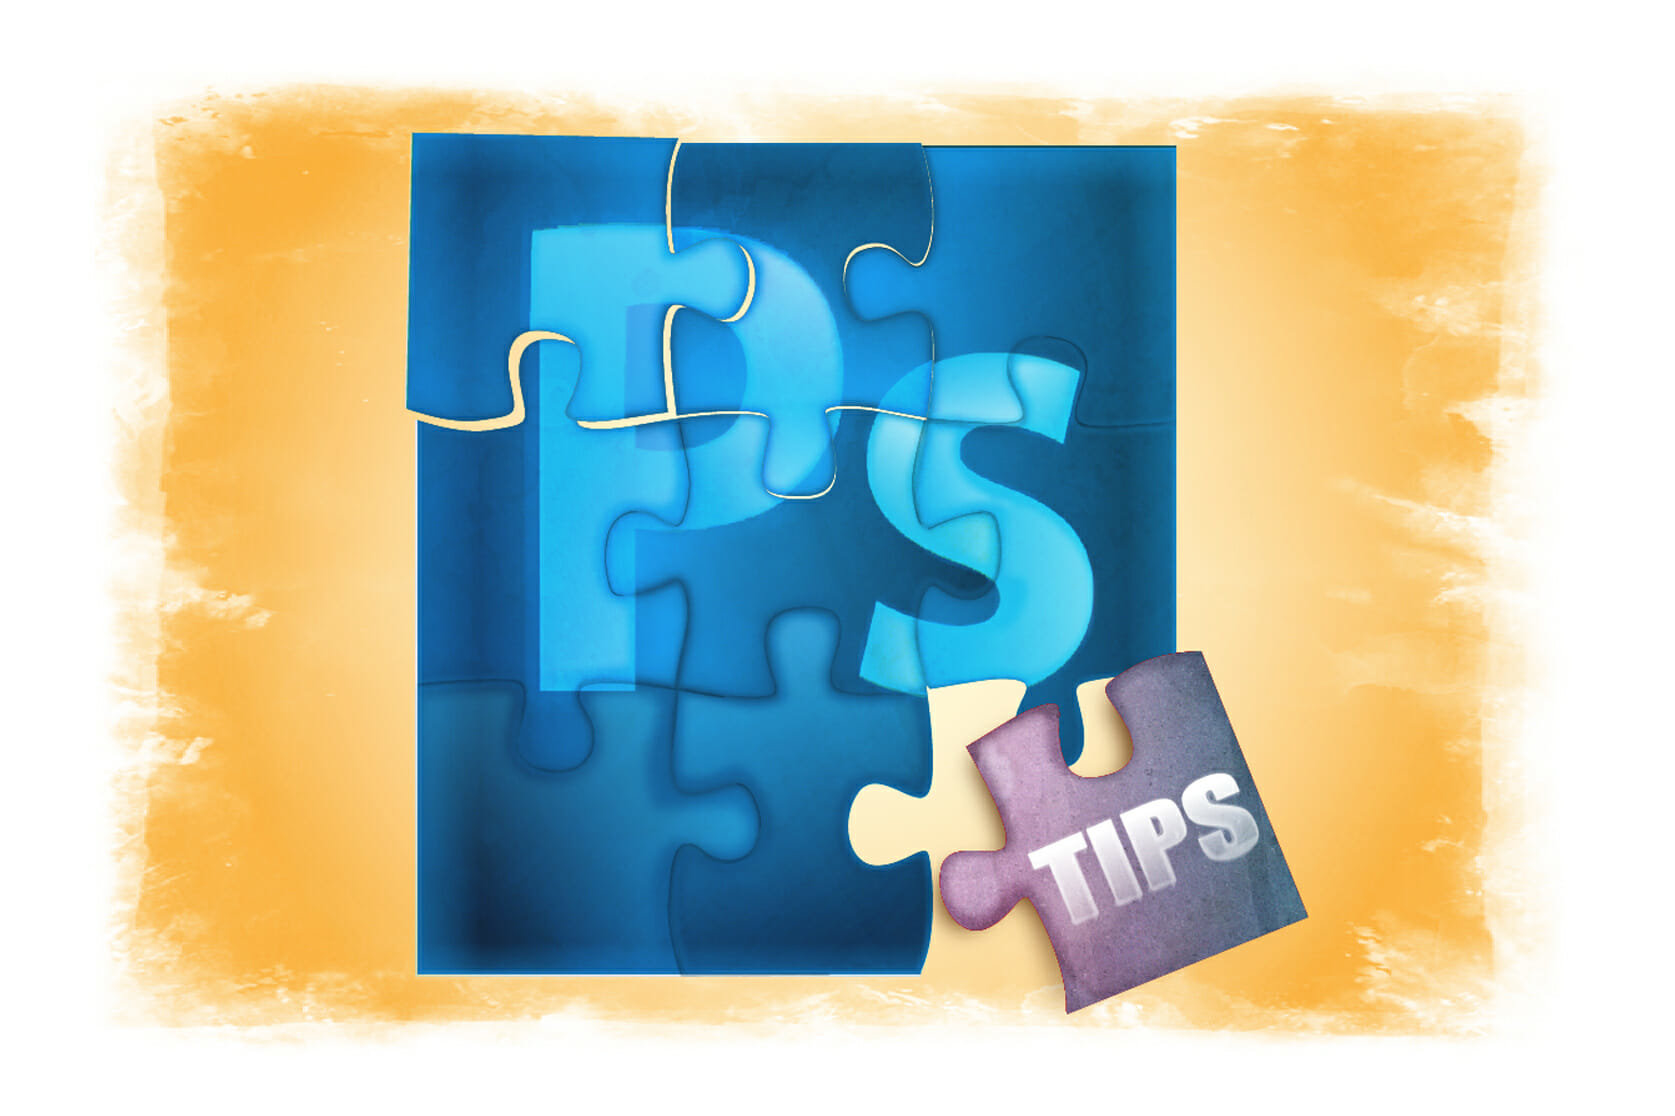 10 Photoshop Tips for Easy PSD to HTML Conversion - Xfive